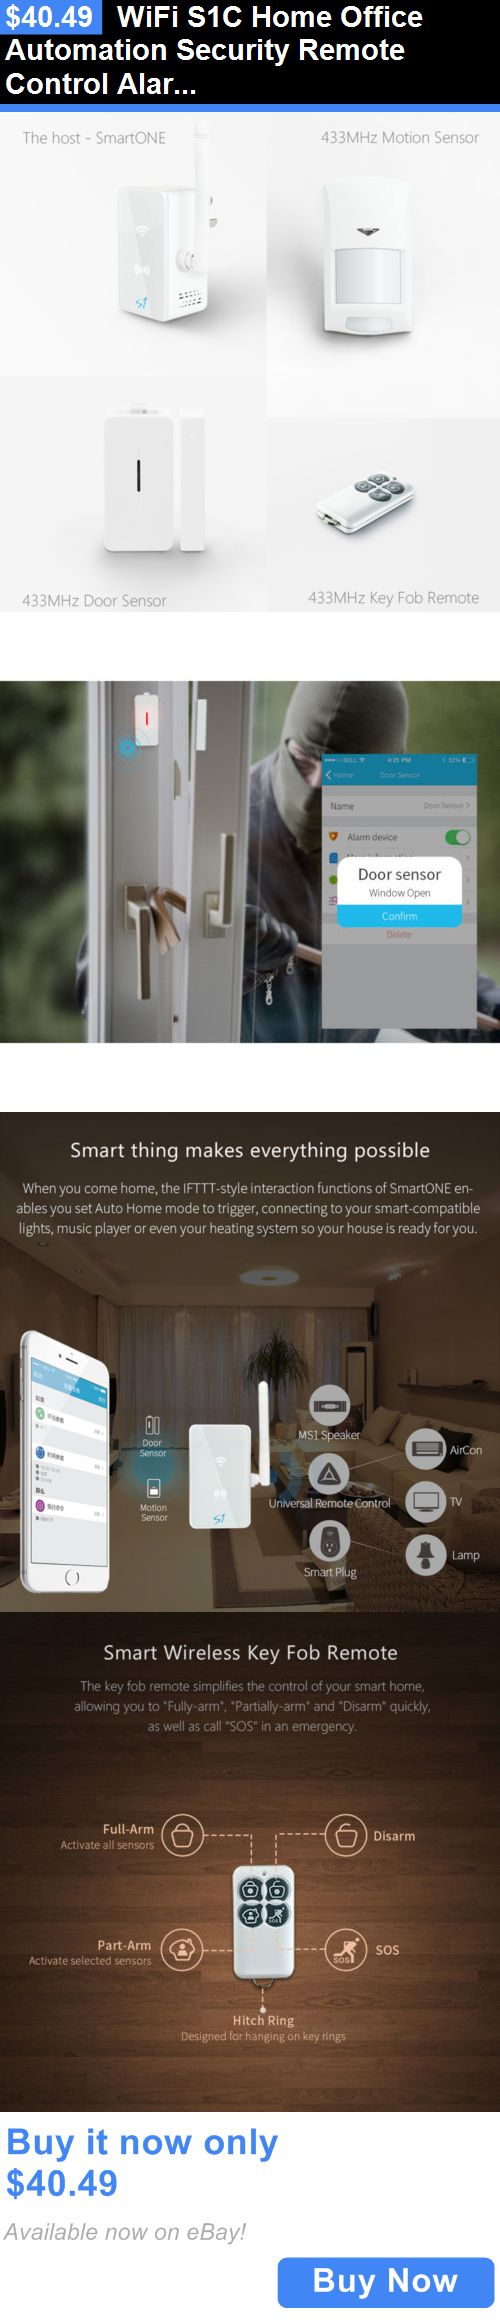 Home Automation Kits: Wifi S1c Home Office Automation Security Remote Control Alarm System Ios BUY IT NOW ONLY: $40.49